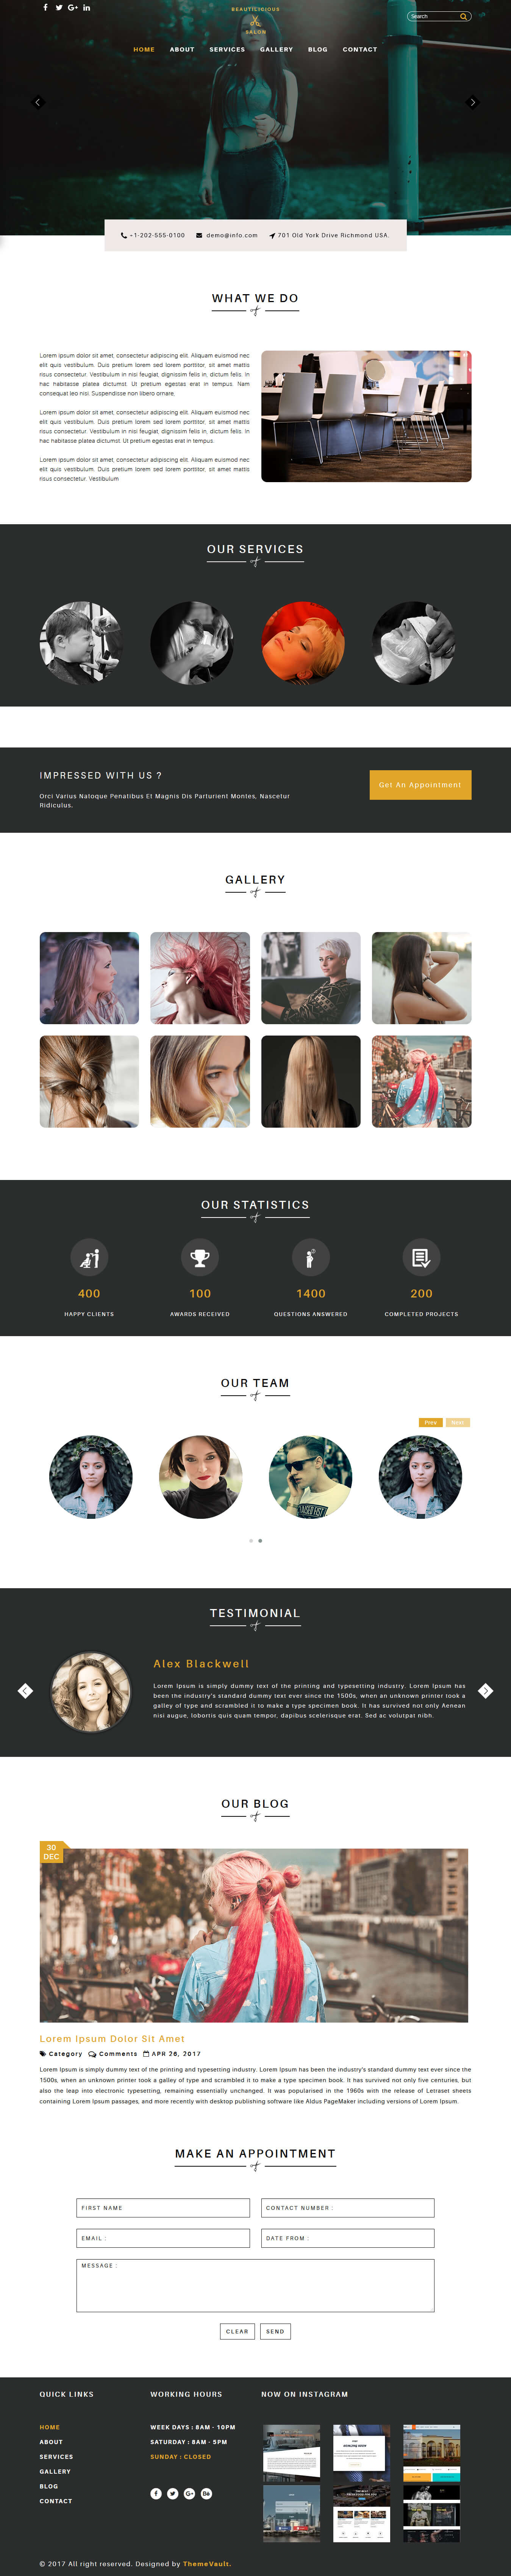 beautilicious free spa and salon website template themevault